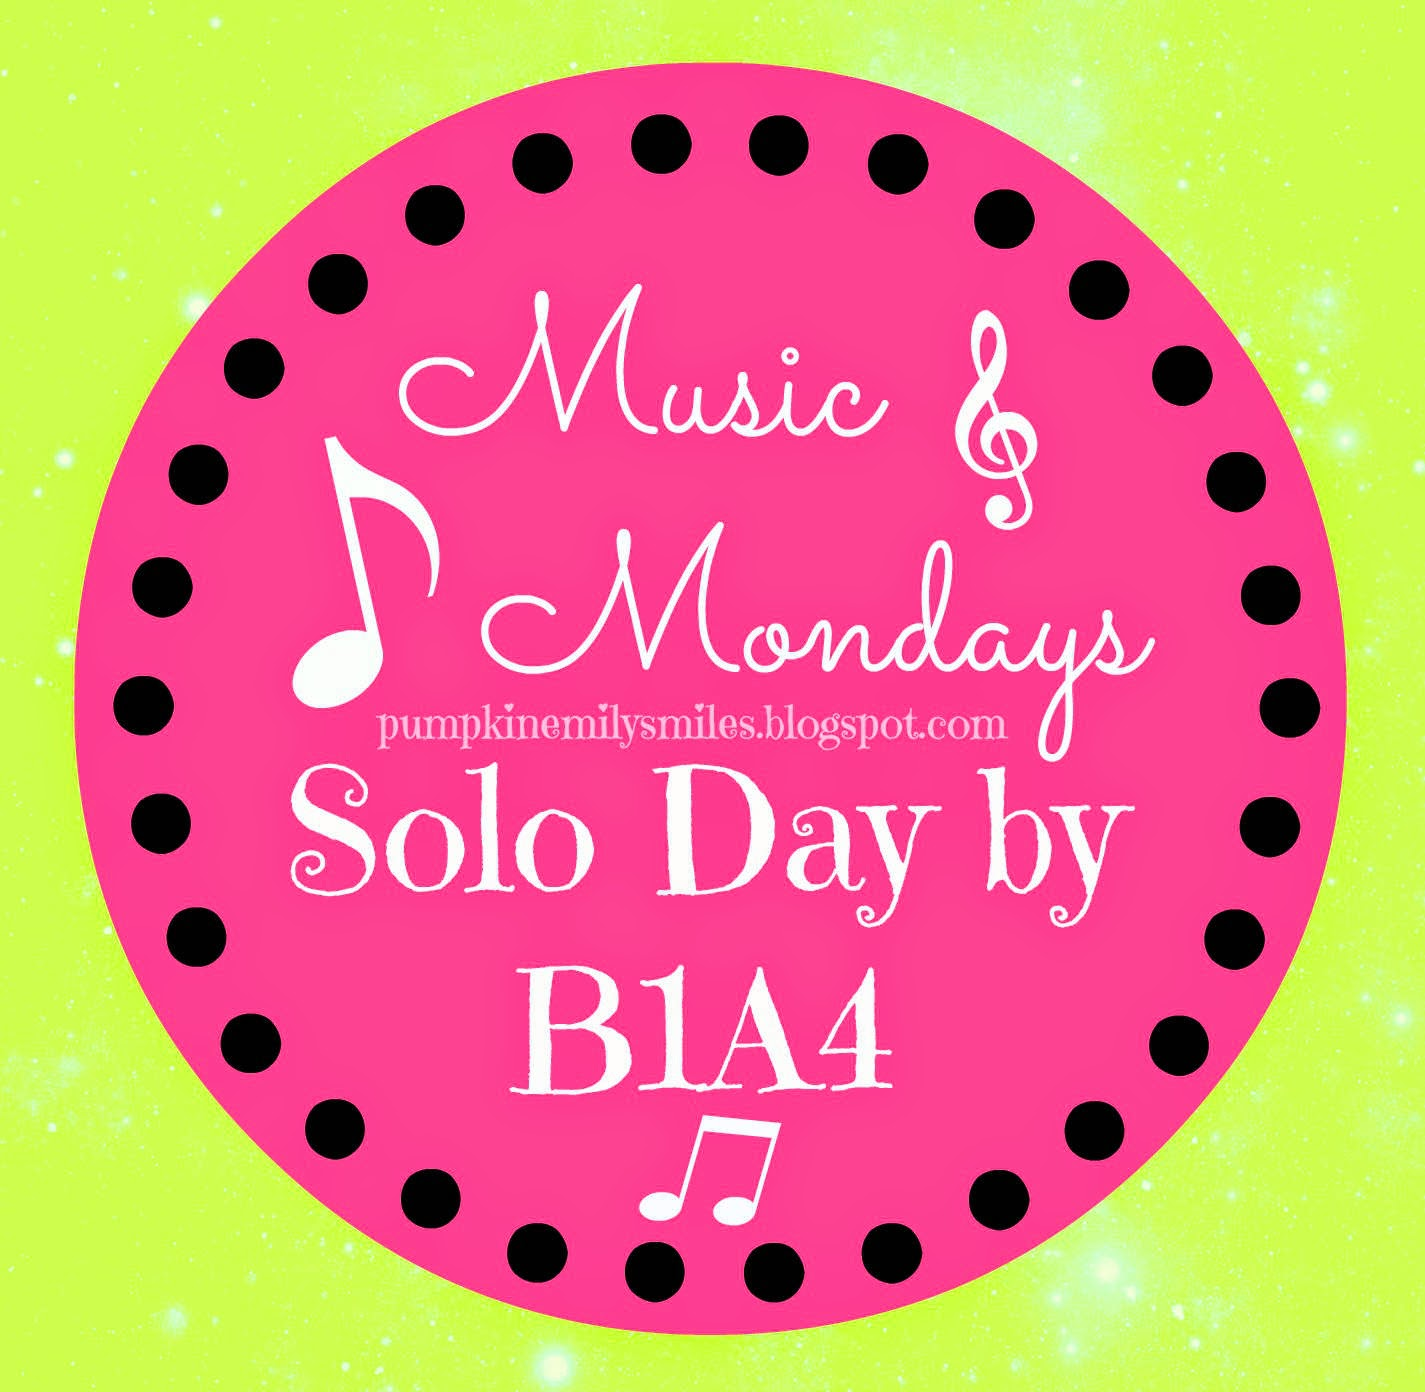 Music Mondays Solo Day by B1A4